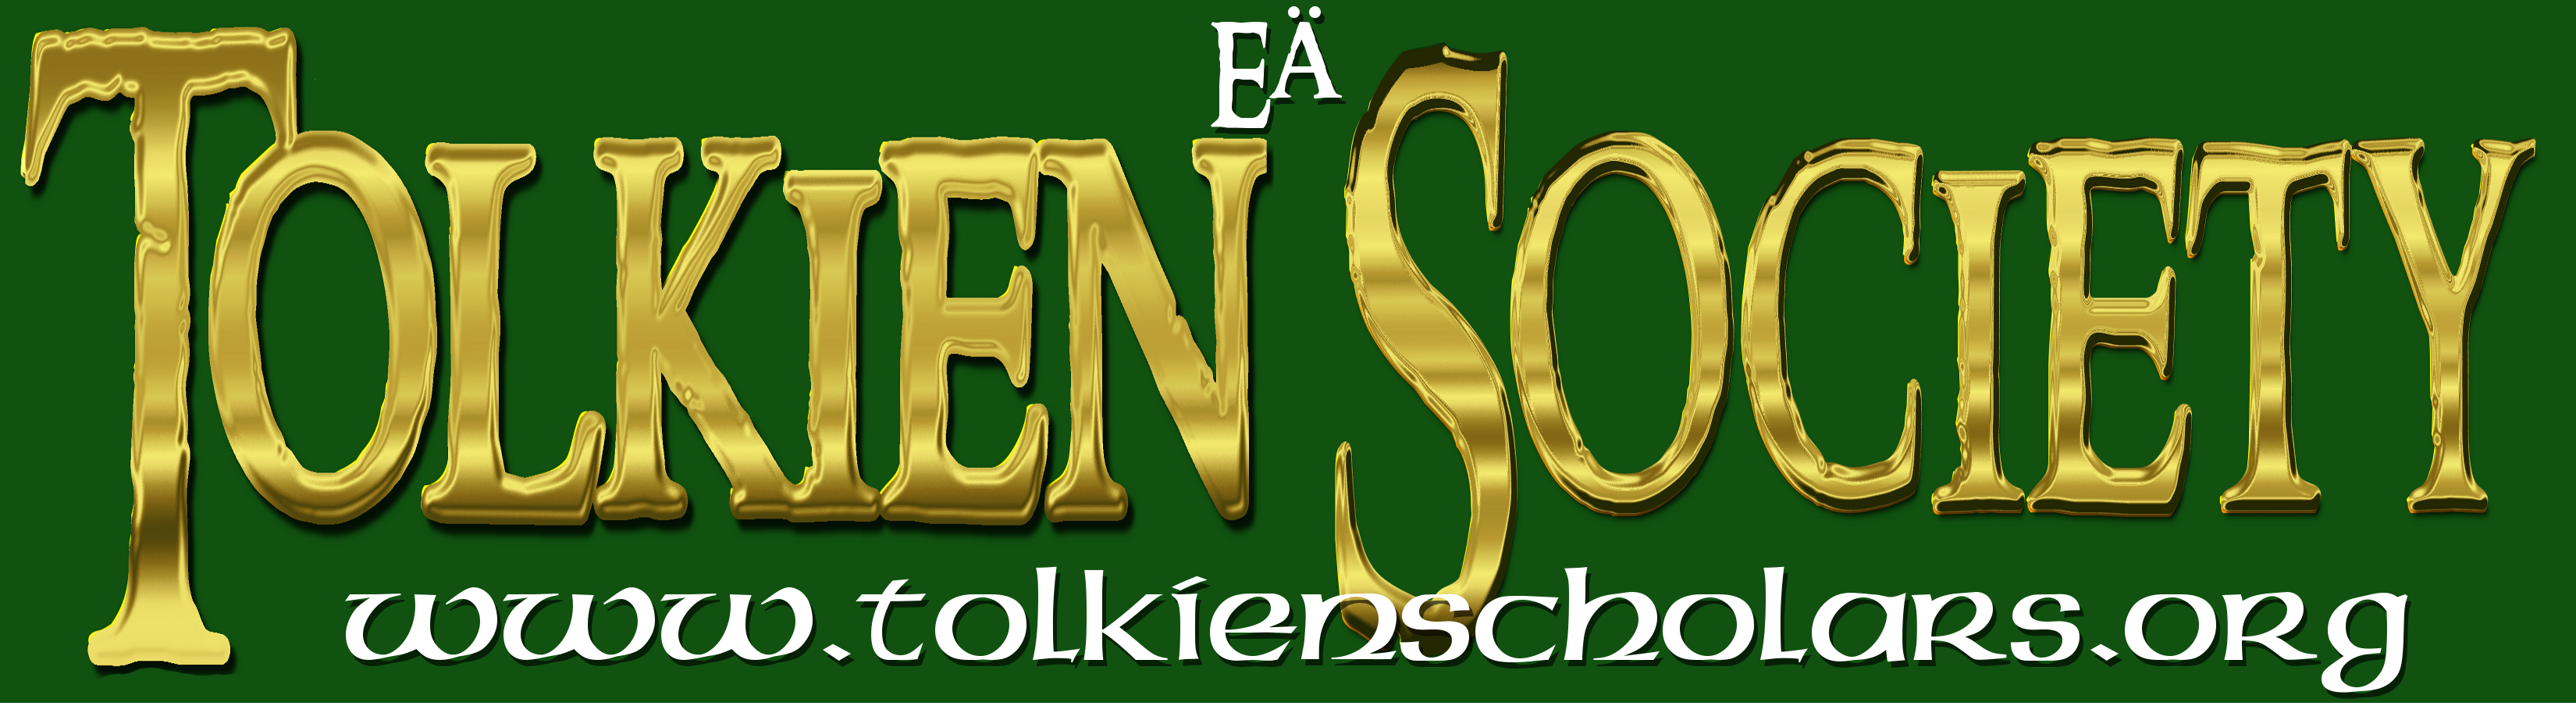 Reminder: Eä Tolkien Society Meeting & Broadcast January 16th, 2021 1-3 pm Pacific Time